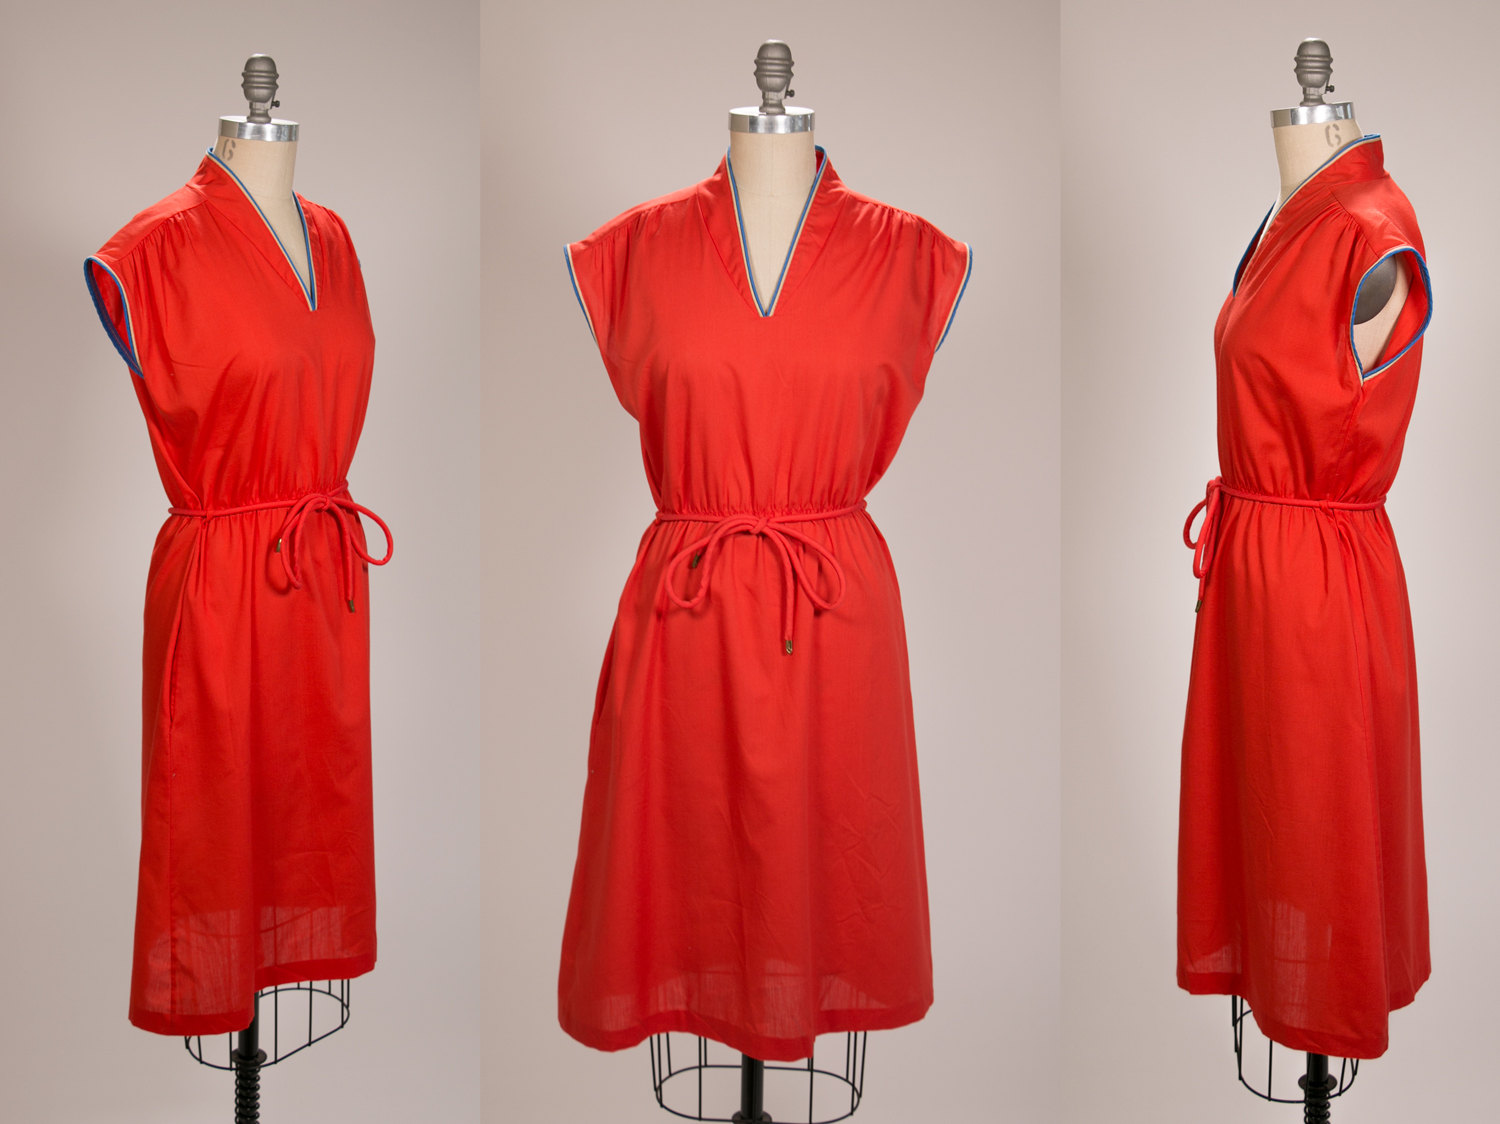 Rare Vintage 1970's Women's Short Sleeve Sleeveless Dress, Anne Leslie, Mod Dress - Size Women's Medium - Red, Blue, Cream - Retro, Hipster